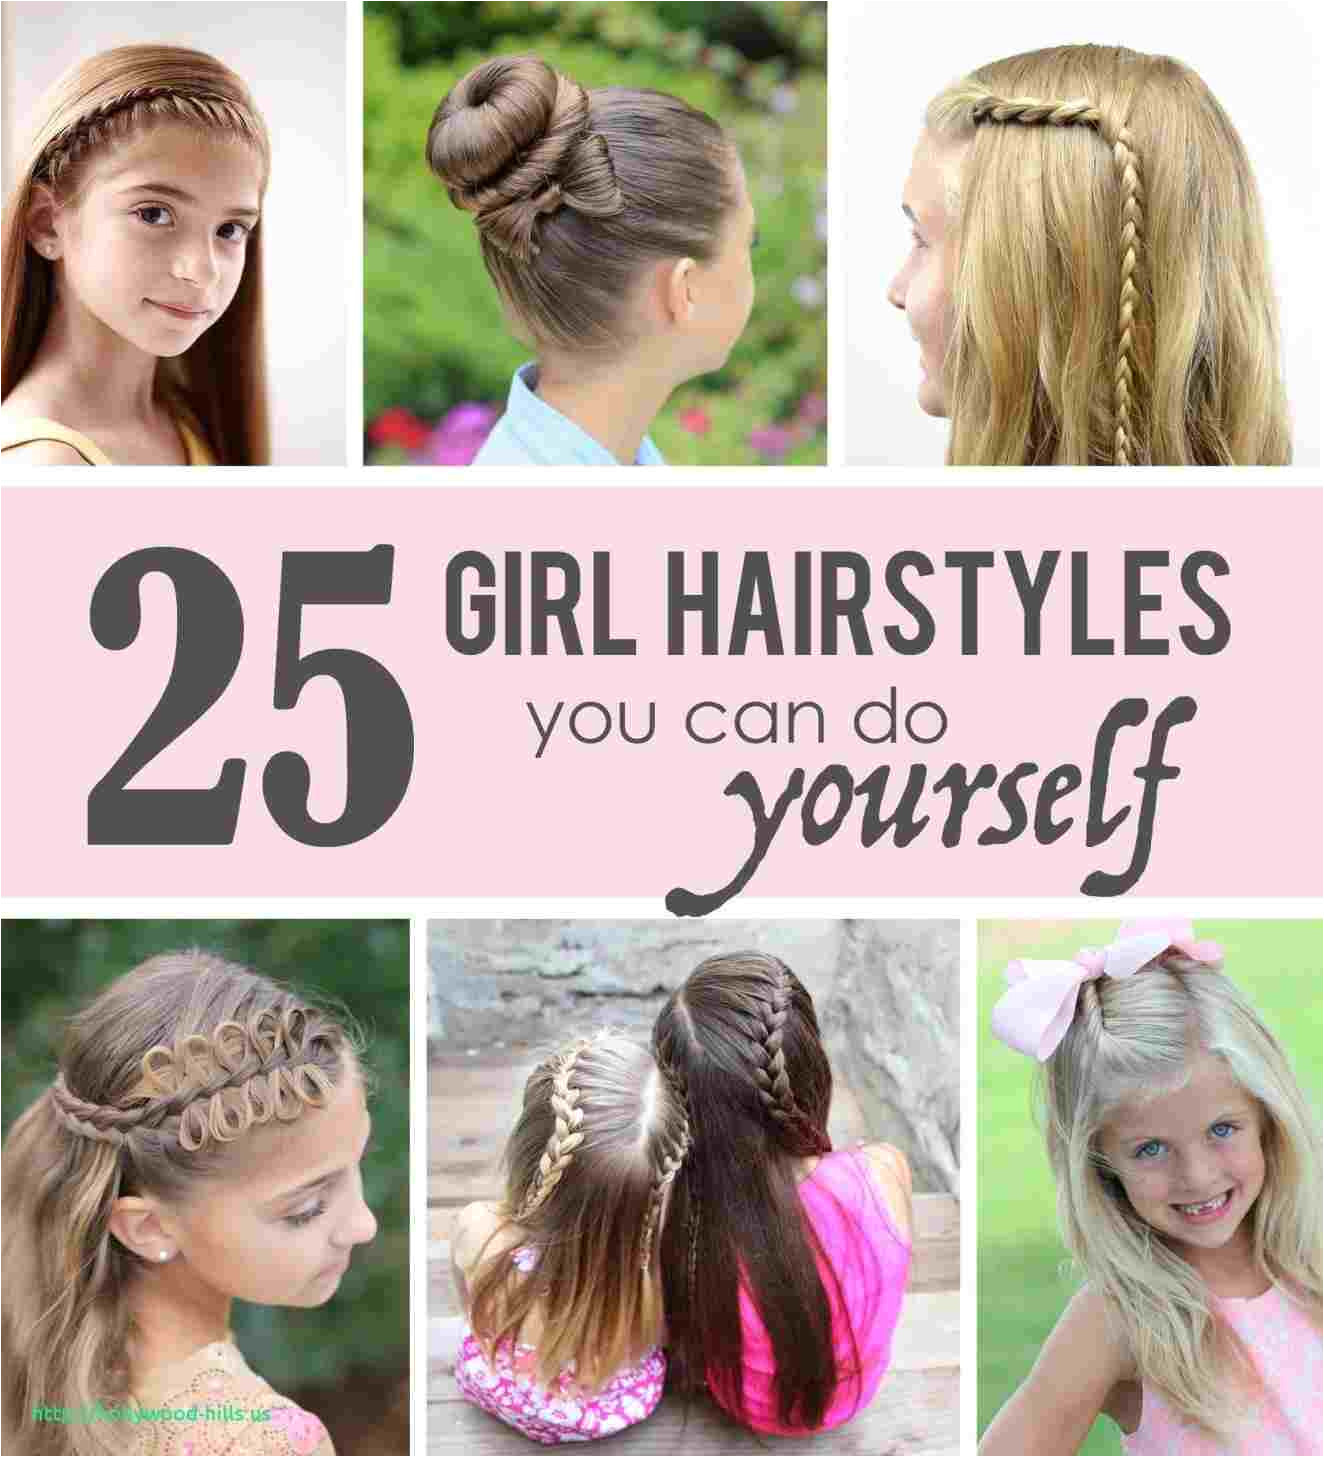 Seventimesbrighter Cute Easy Hairstyles for School Luxury Middle School Girl Hairstyles Middle School Easy 6th Grade Cute